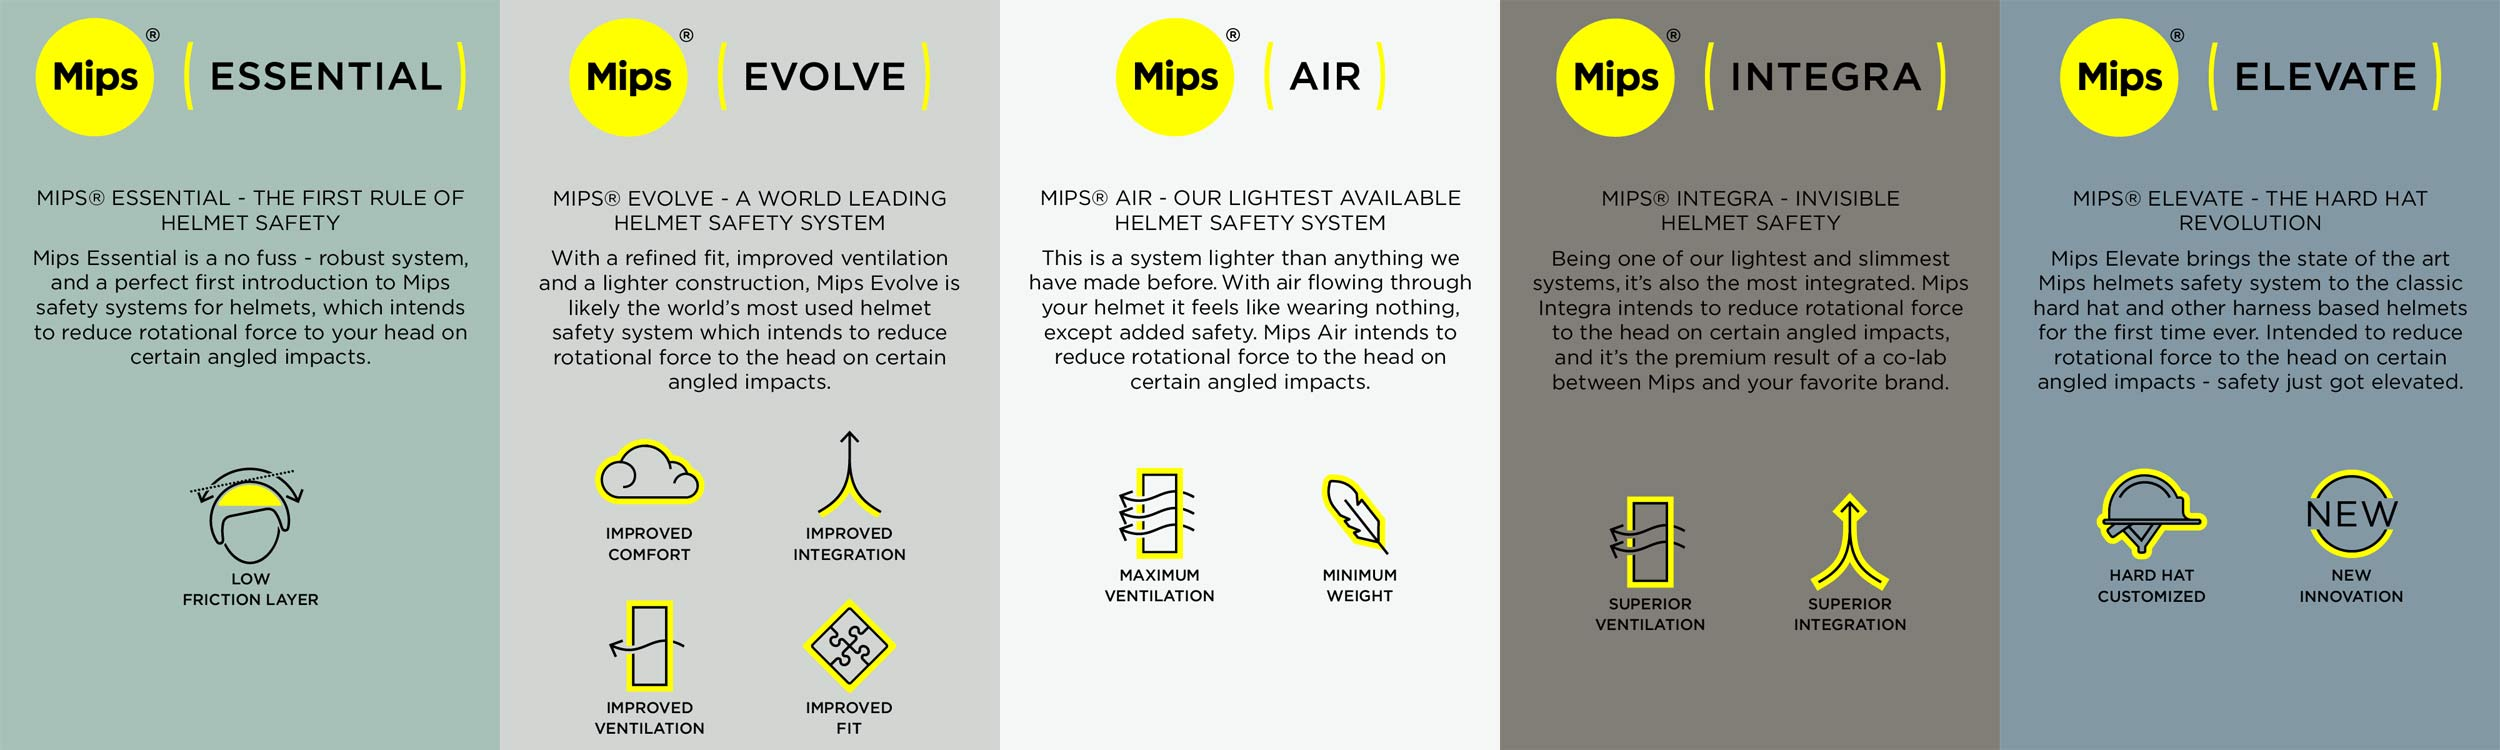 MIPS Essential Evolve Air Integra Elevate helmet protection renaming, rotation-reduction, safer helmets